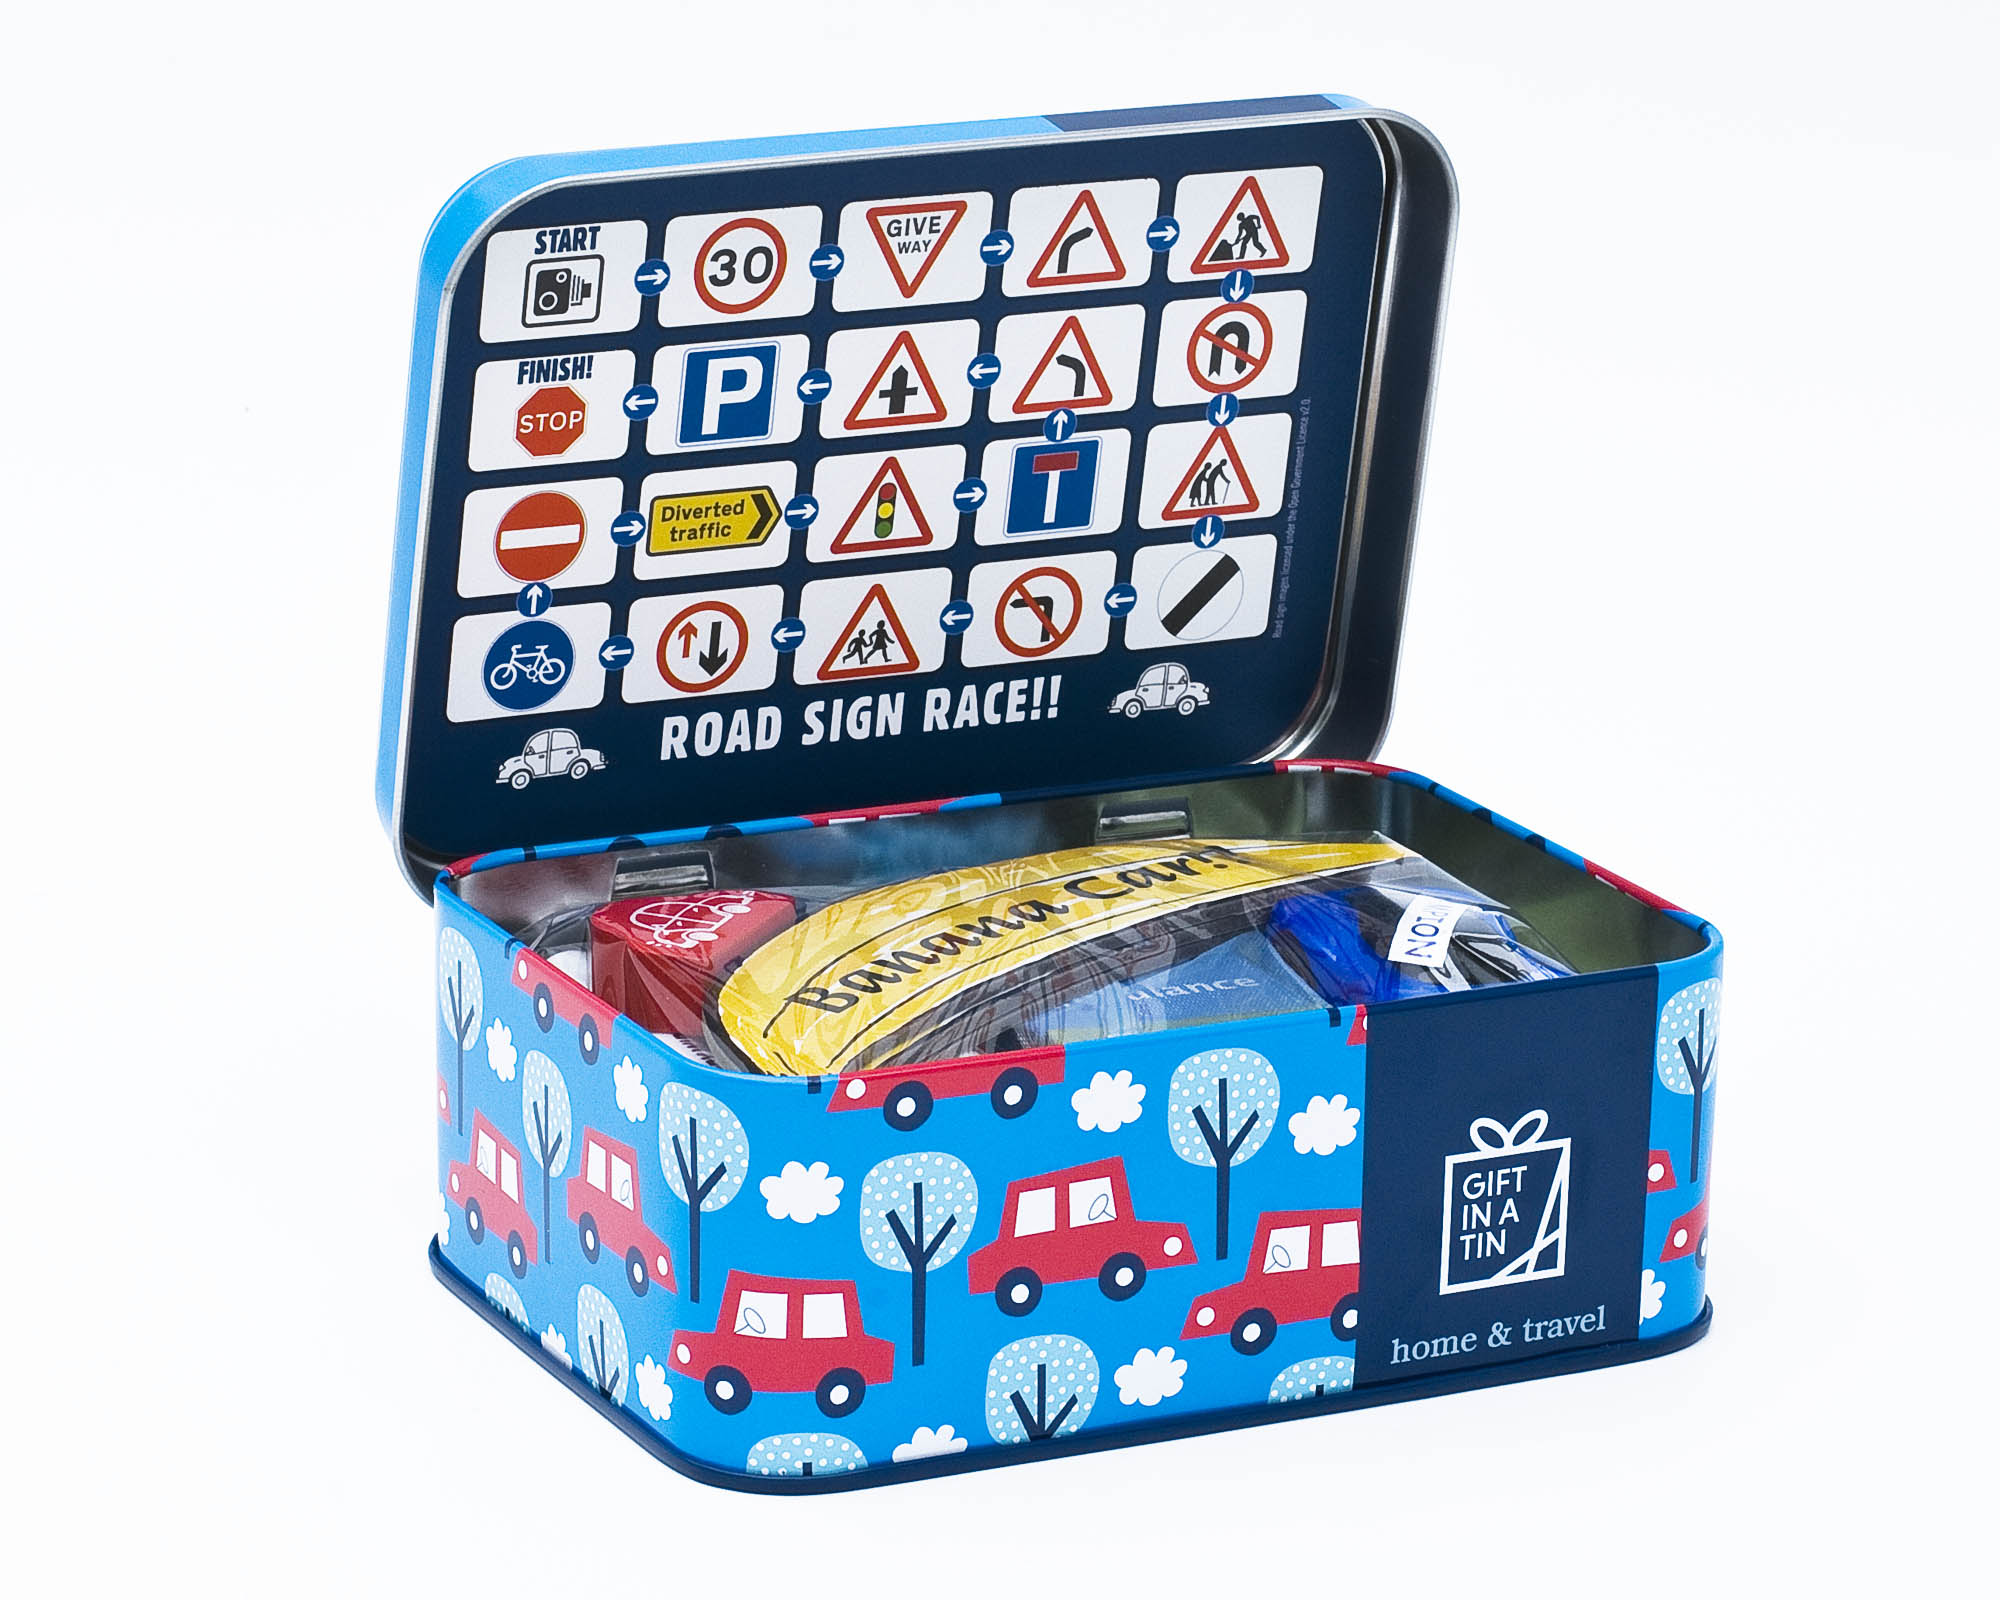 Gift in a Tin – Car Journey Games